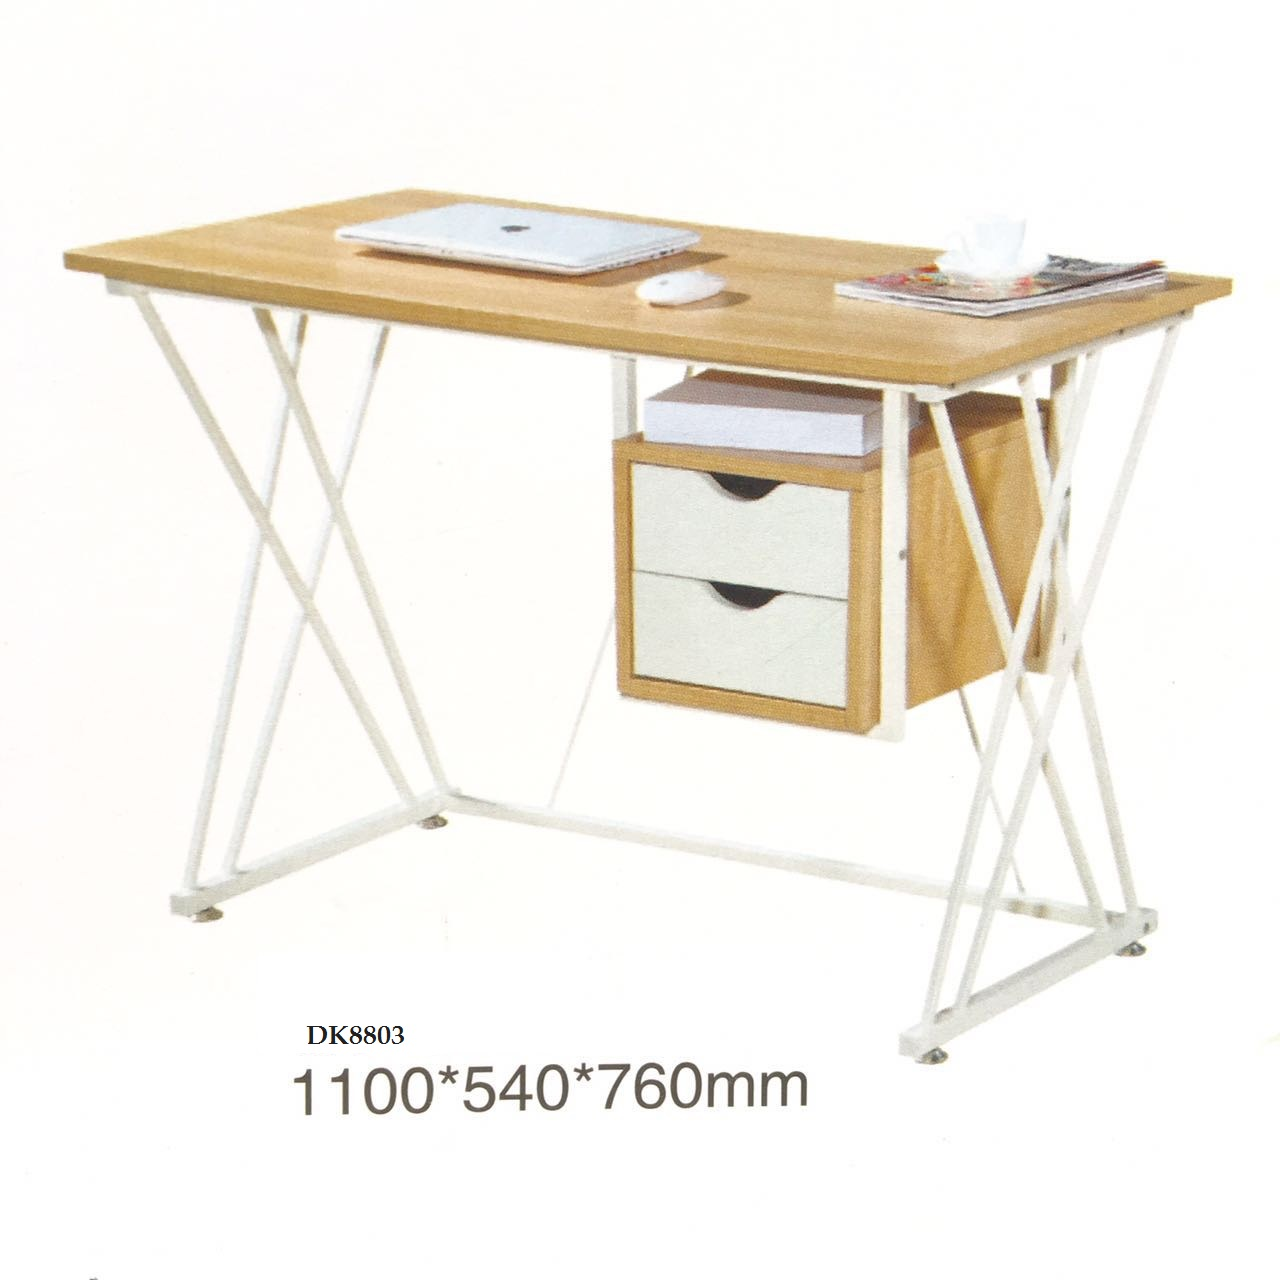 Study Table | Buy Wooden Study Tables Online India at 55% OFF